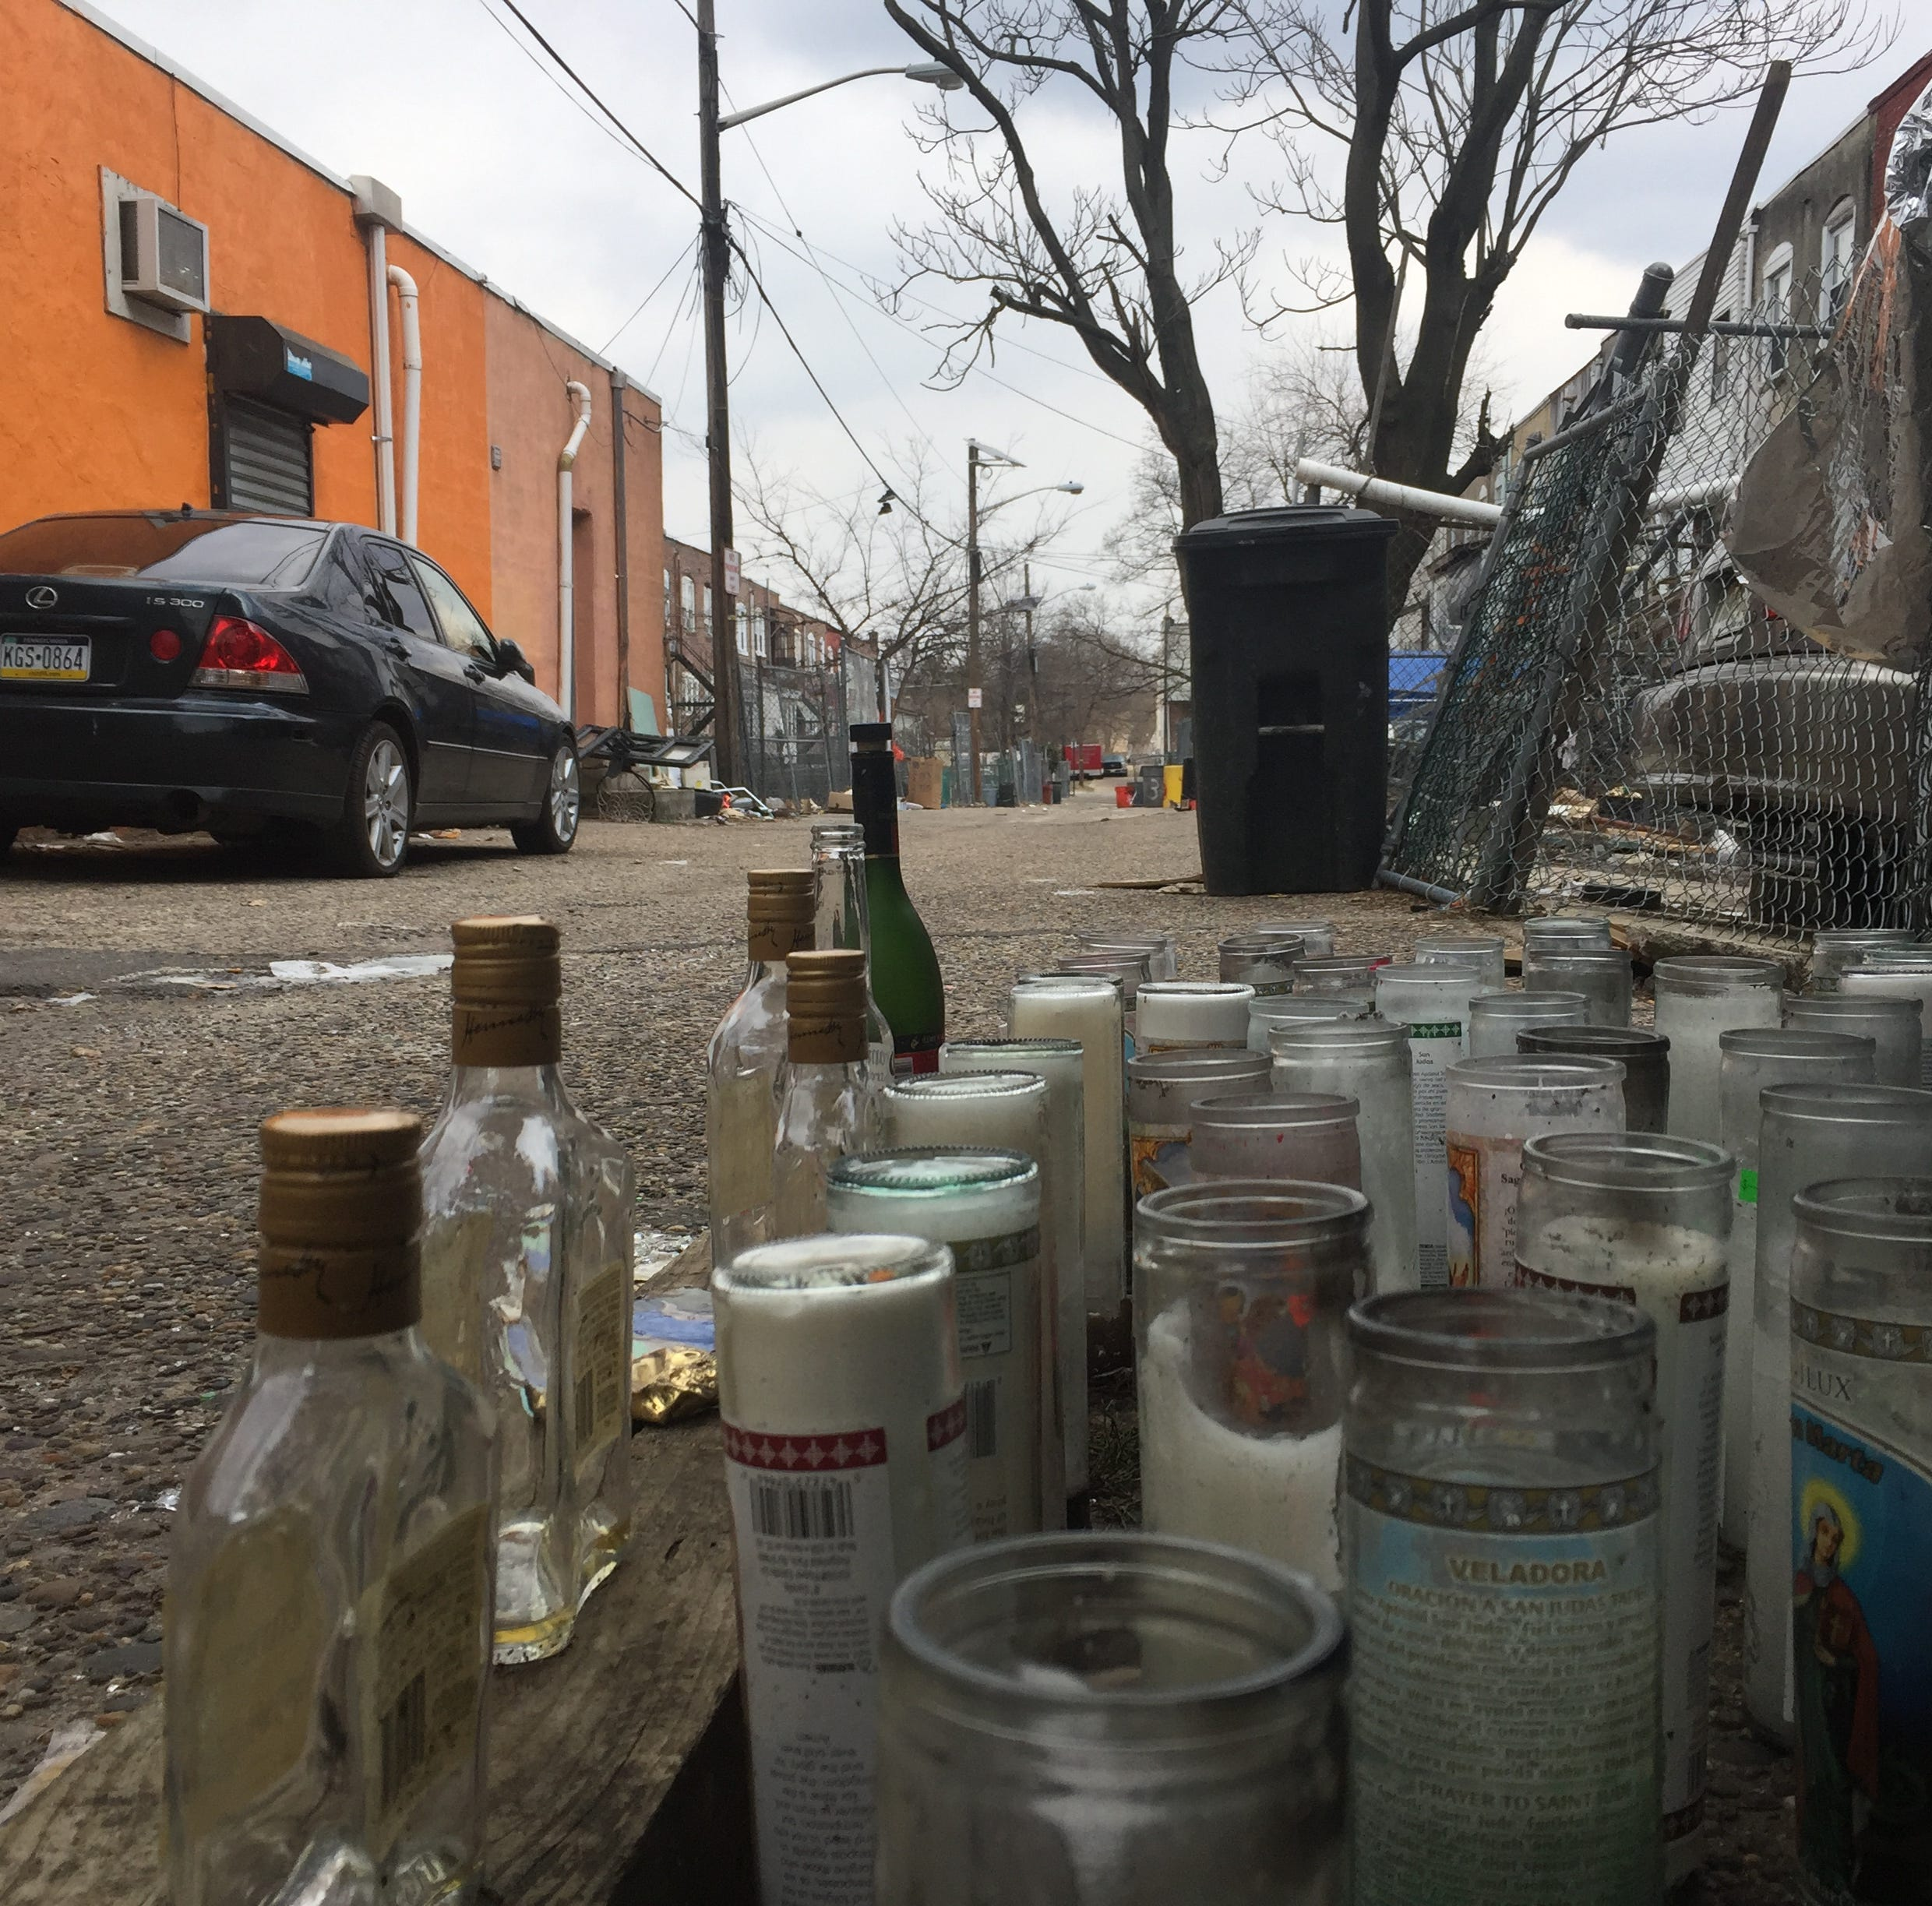 Camden's open-air drug markets are decreasing, but still deadly